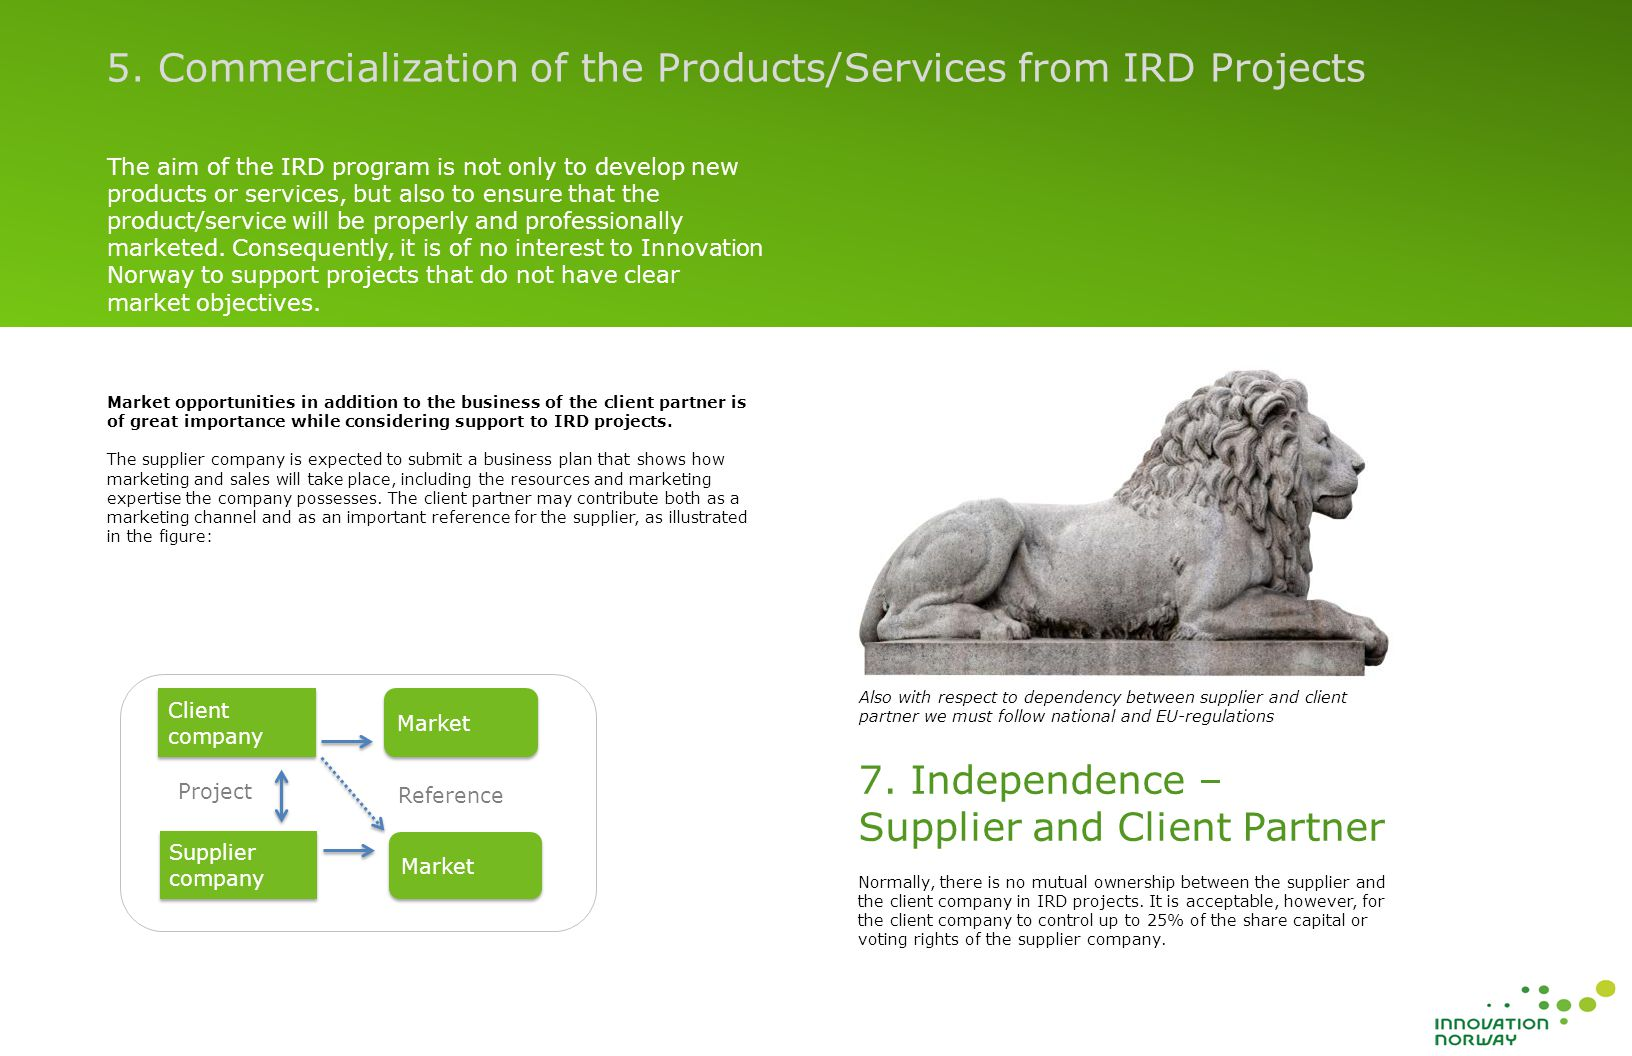 The aim of the IRD program is not only to develop new products or services, but also to ensure that the product/service will be properly and professionally marketed.